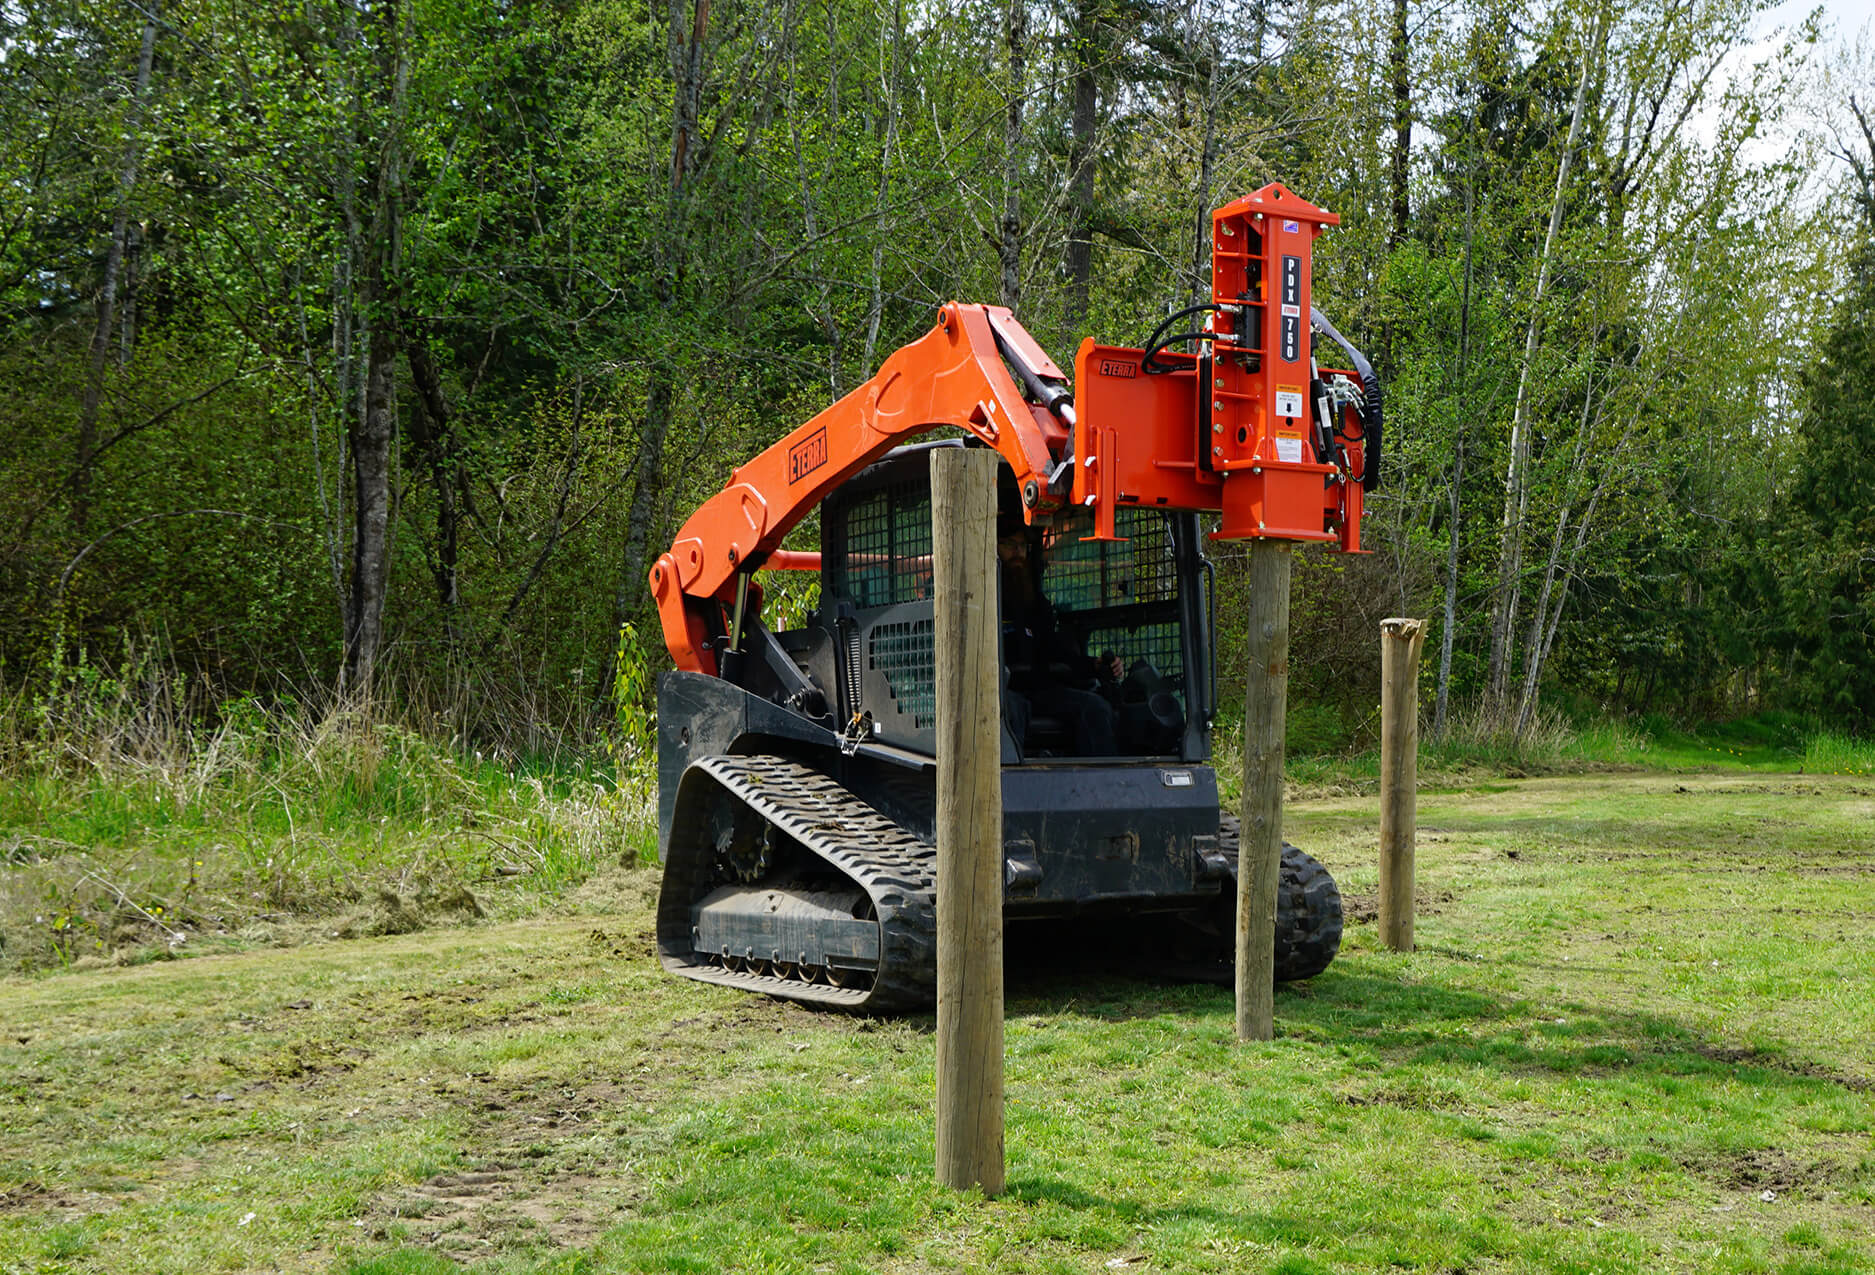 Eterra PDX-750 Skid Steer Post Driver Attachment action fence